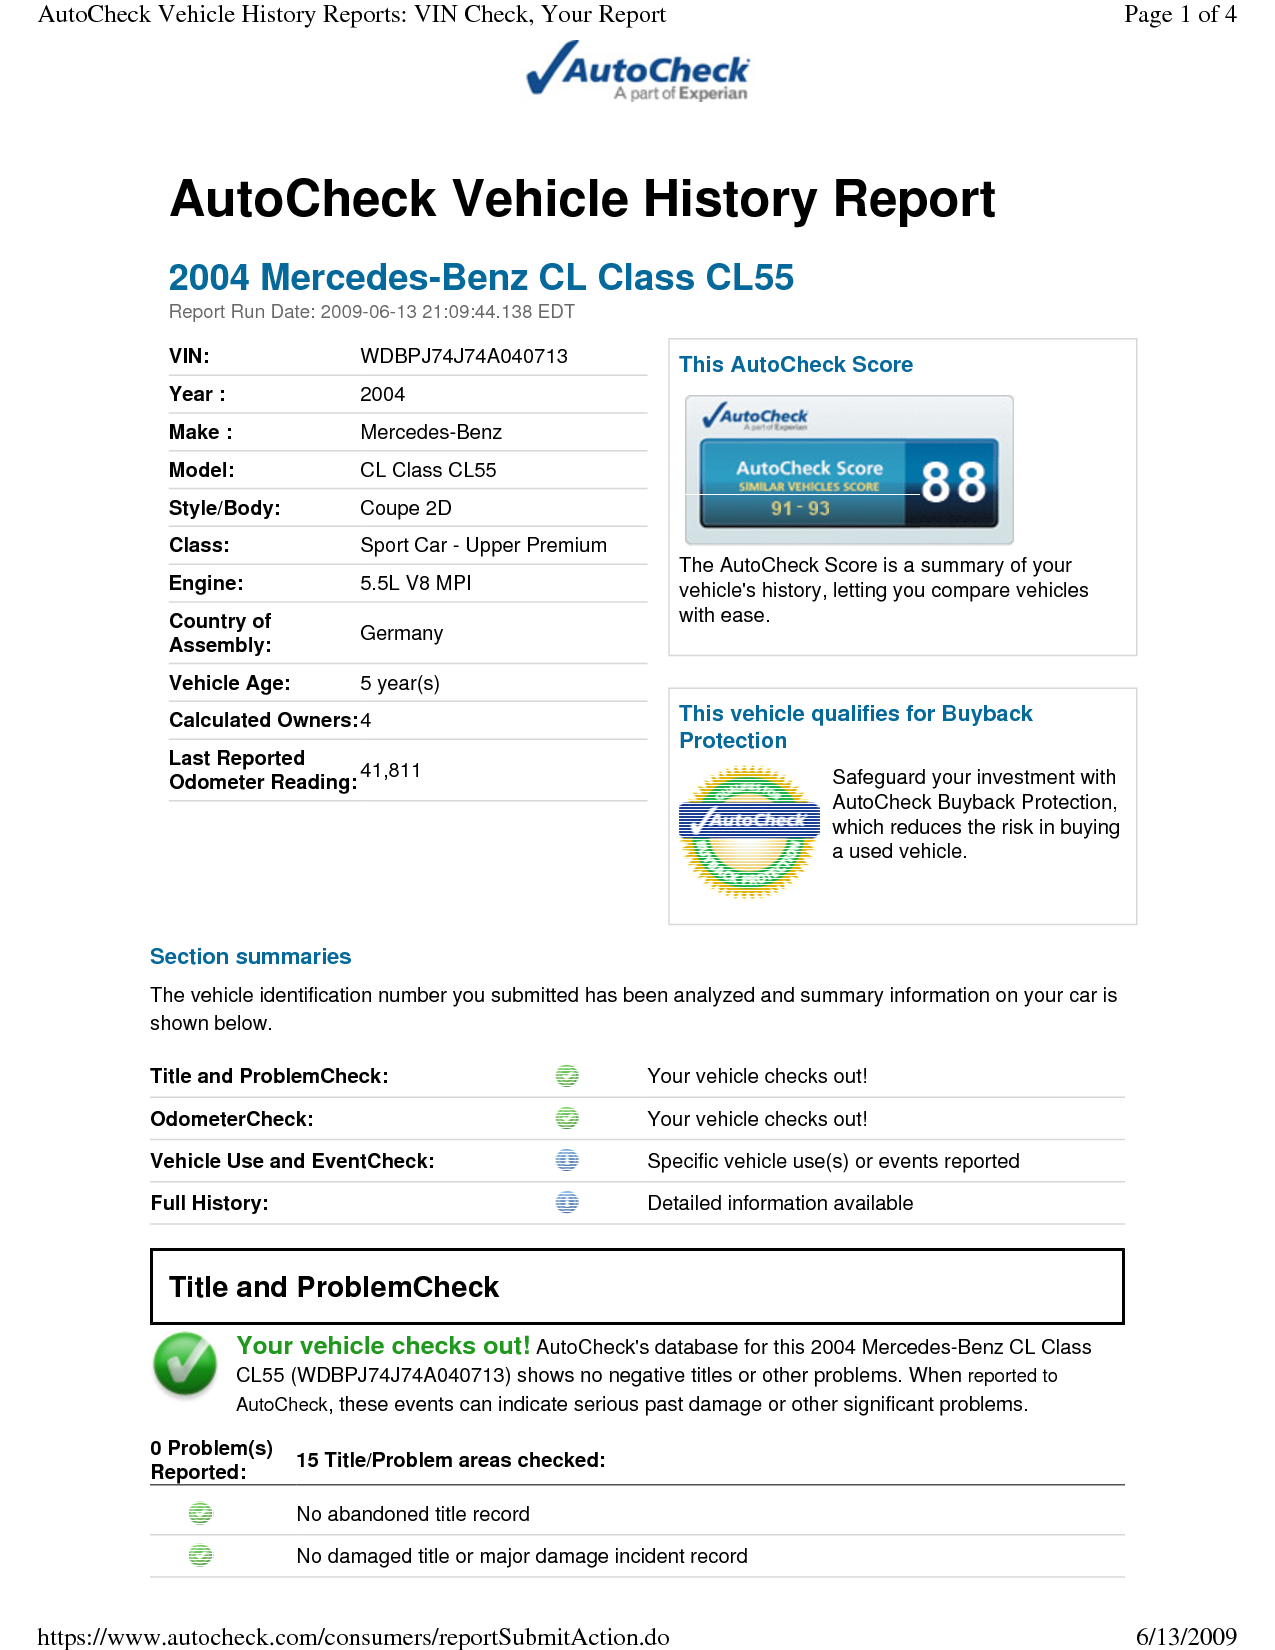 Unlimited Carfax Reports for Dealers Beautiful Carfax Vs Autocheck Reports What You Don T Know